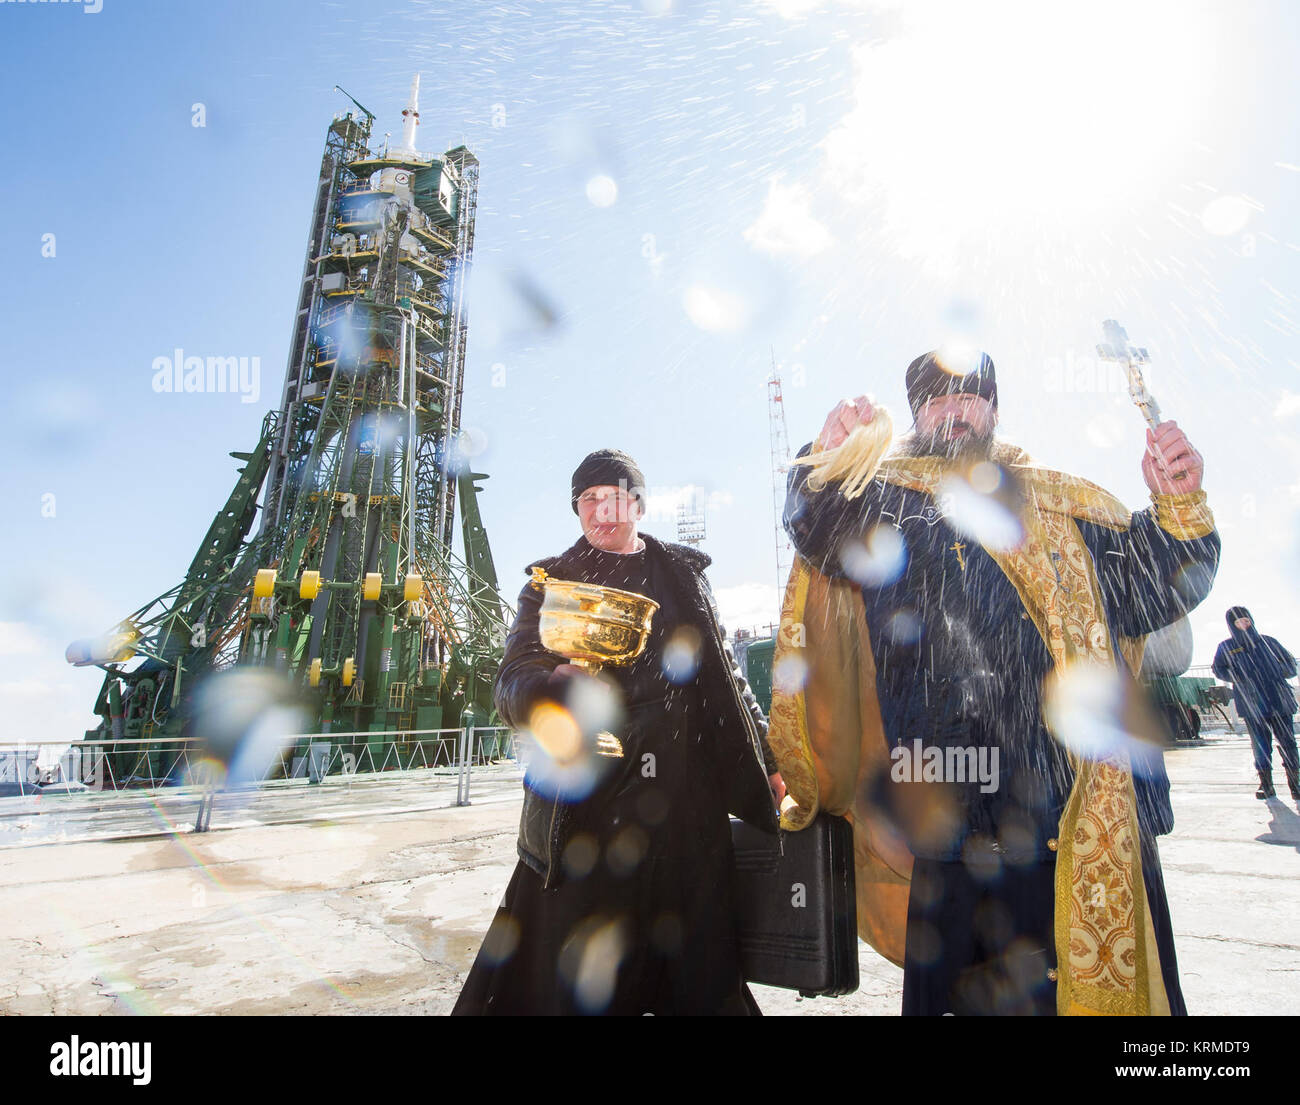 An Orthodox priest blesses members of the media at the Baikonur Cosmodrome launch pad on Thursday, March 17, 2016 Stock Photo